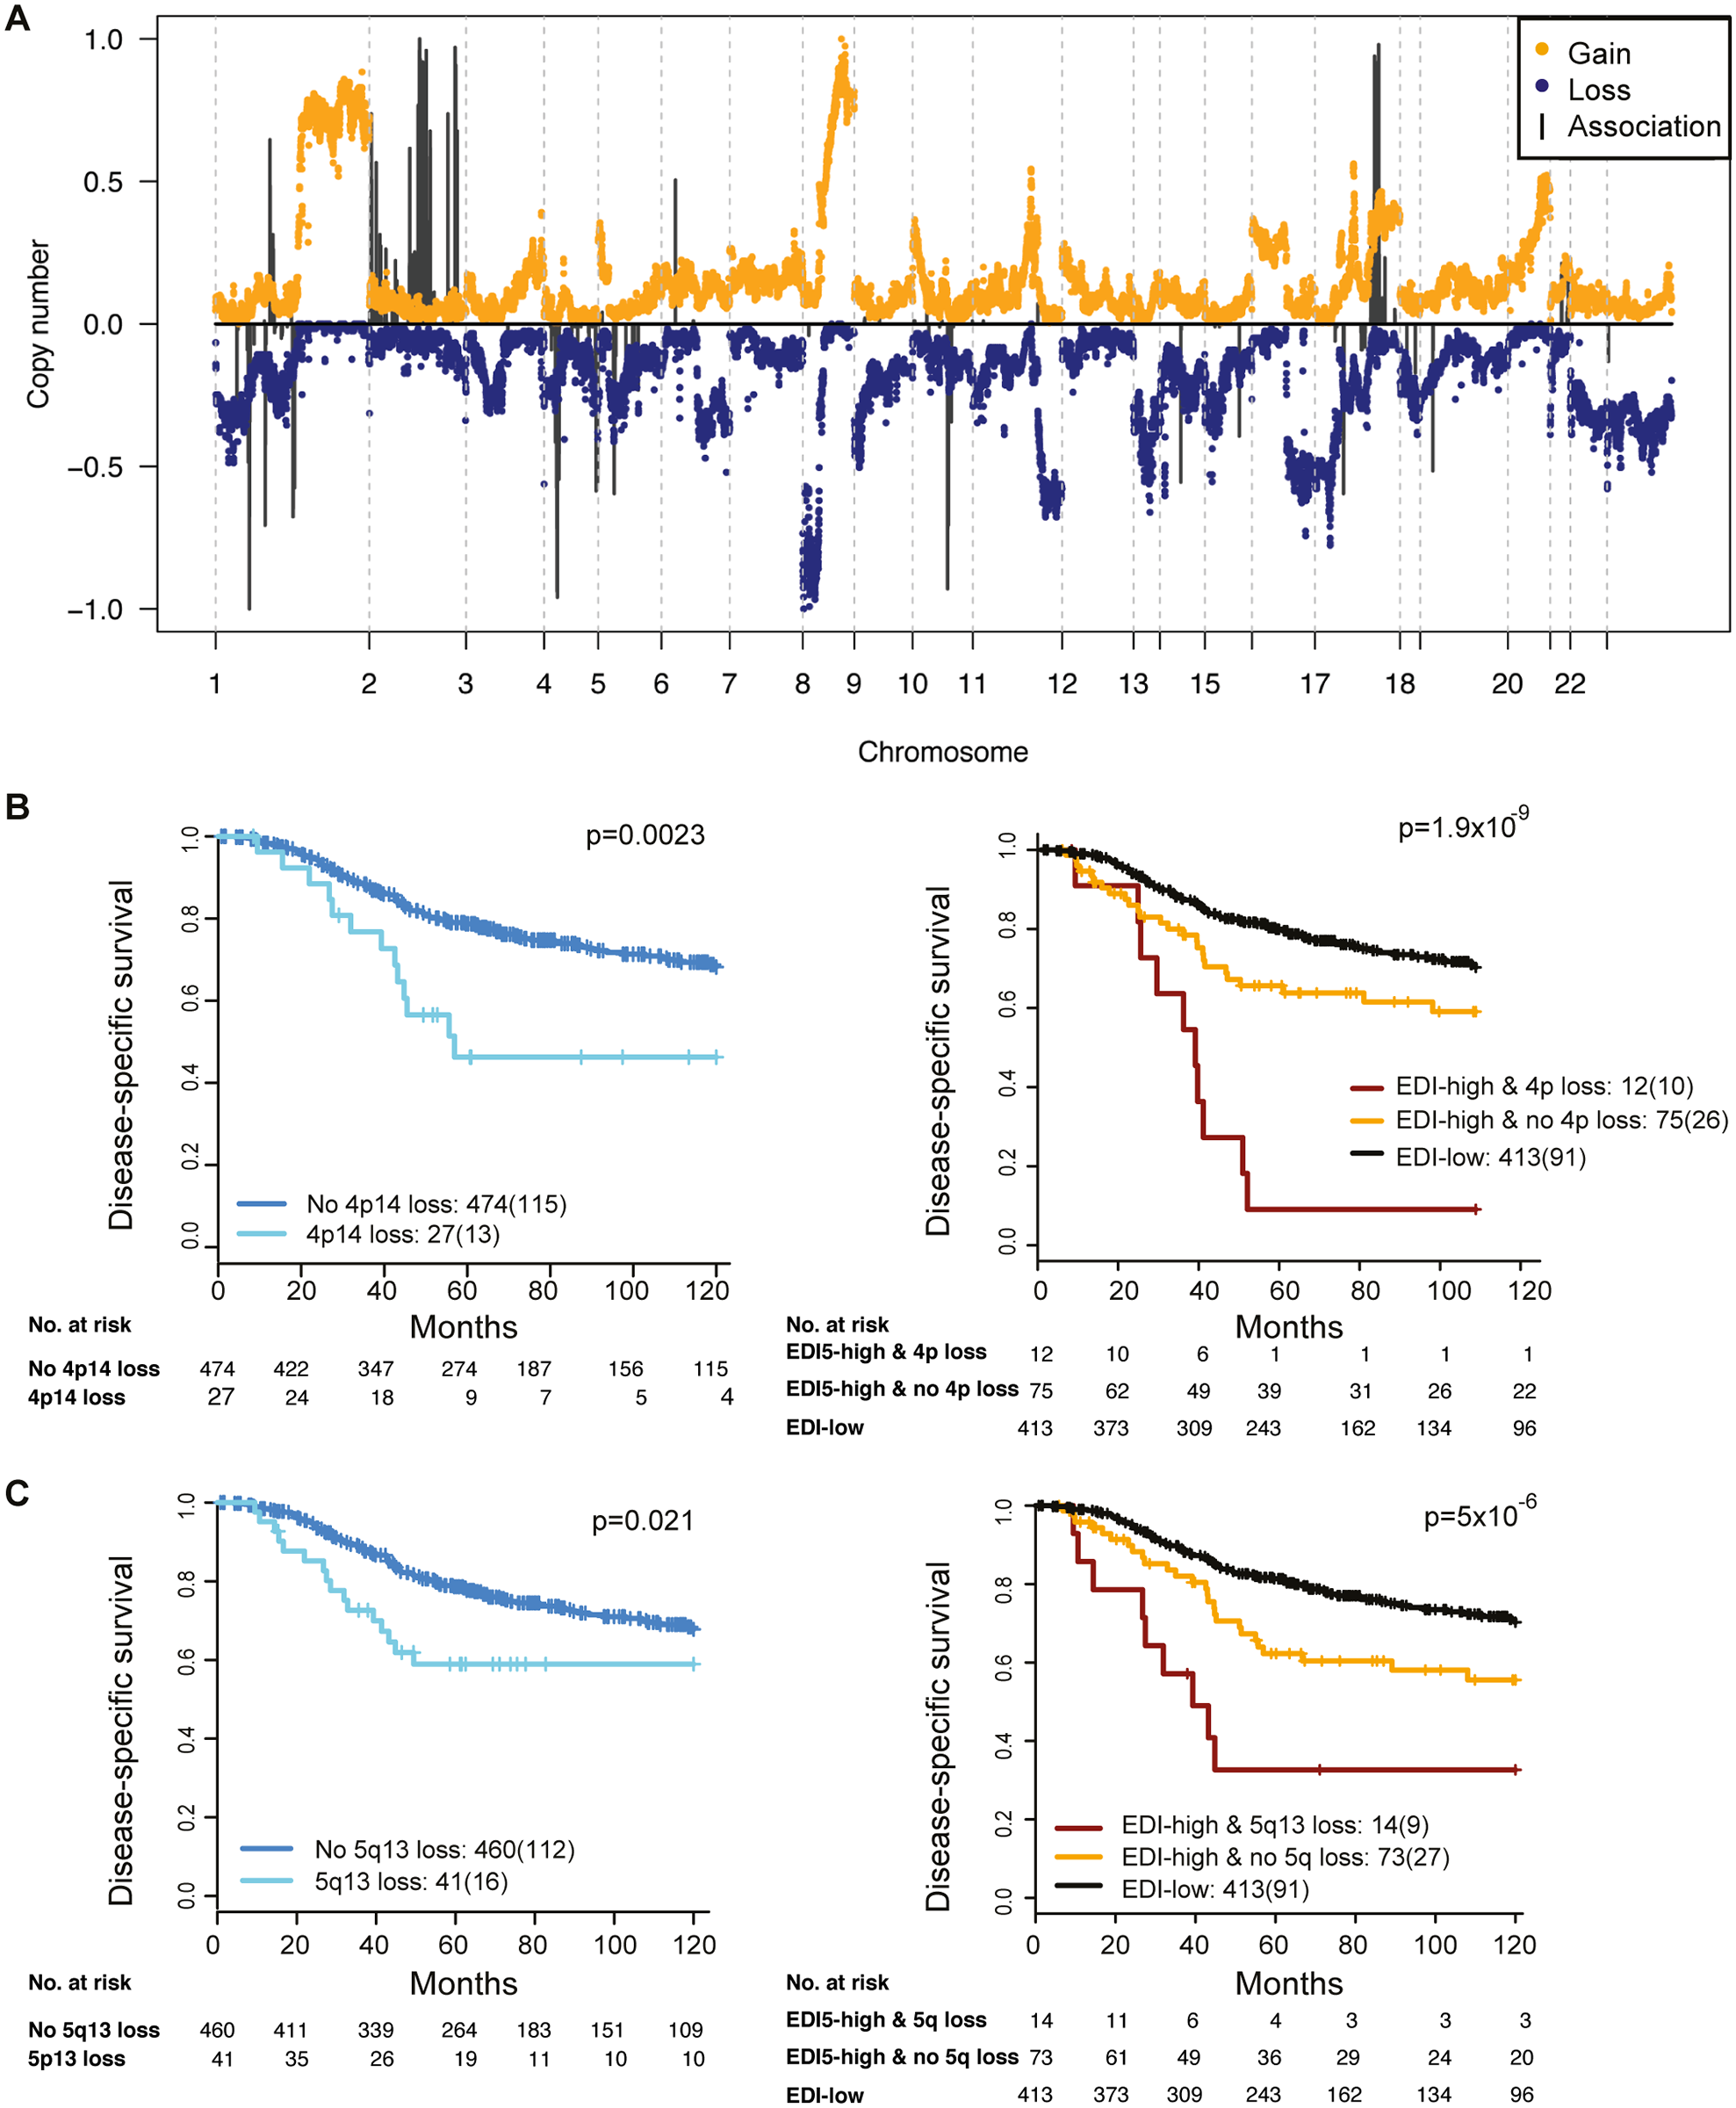 The relationship between ecological heterogeneity and cancer genomic aberrations in 507 grade 3 tumors.